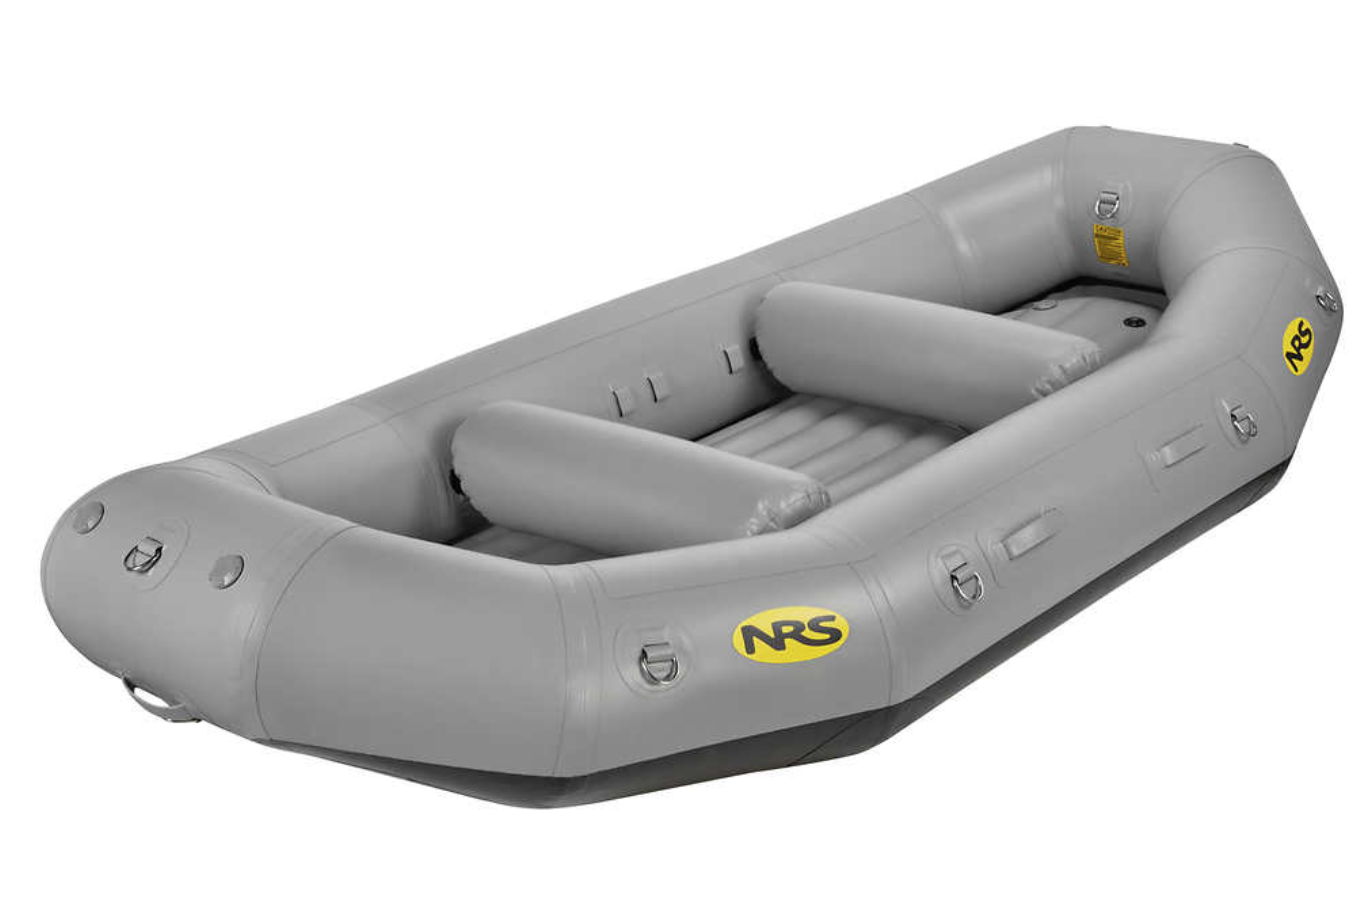 The NRS E-120 Whitewater Raft. Source:  https://www.nrs.com/product/85037.01/nrs-e-120d-self-bailing-rafts